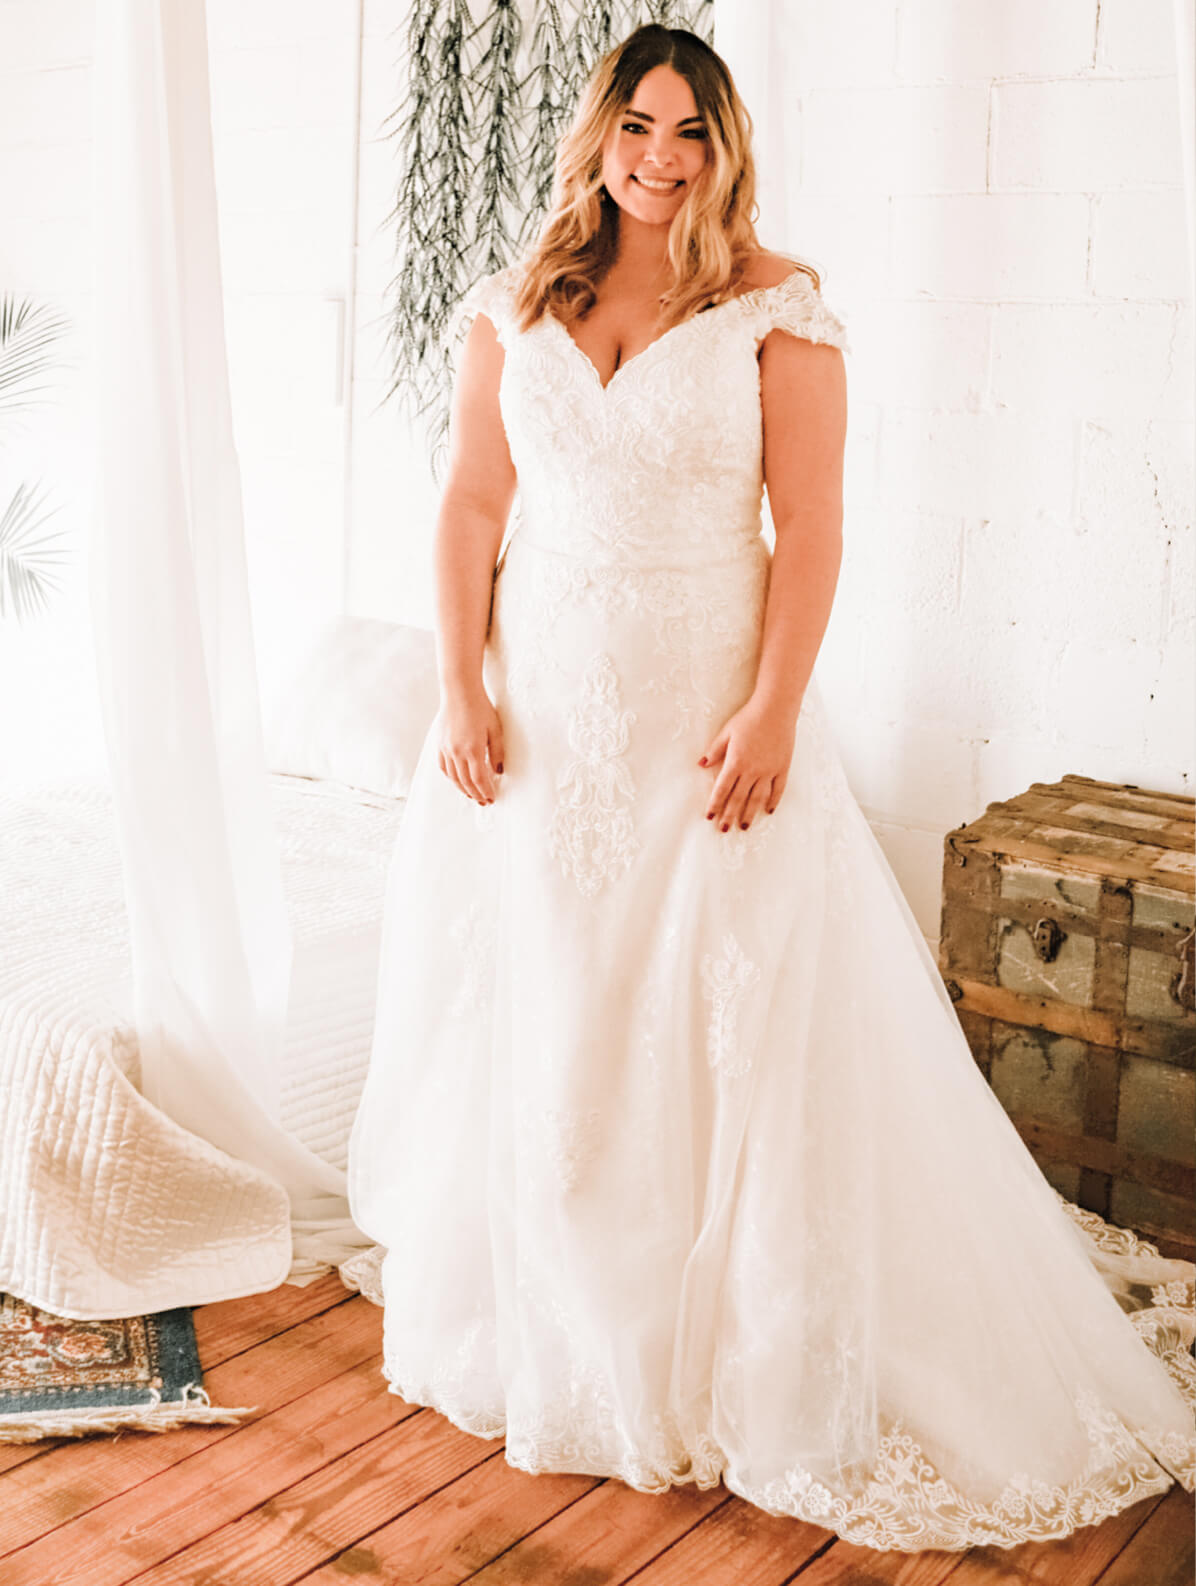 Blonde in White Pronovias Dress